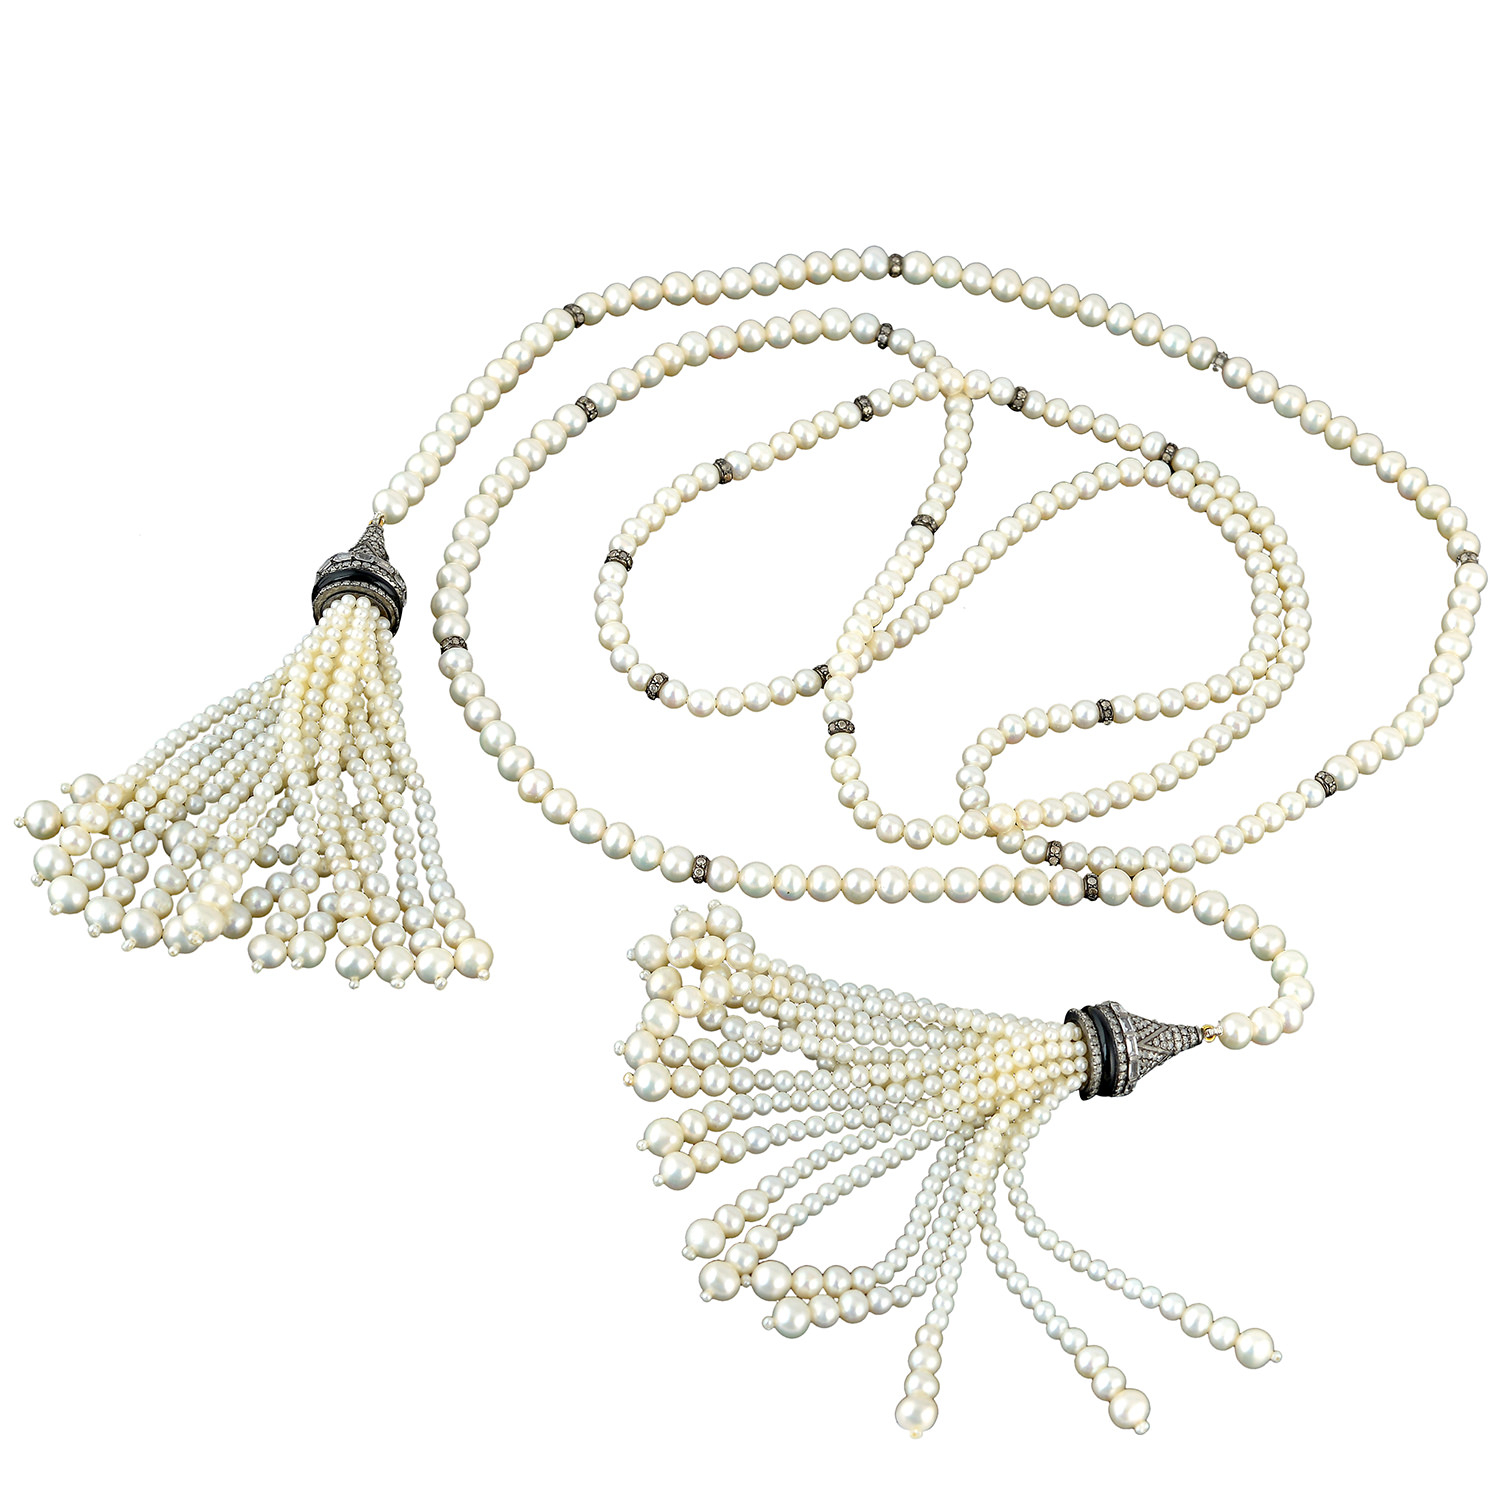 Details About Pave Diamond Sapphire Onyx Pearl Beads 18k Gold Rope/lariat Necklace 925 Silver In Most Popular Beads & Pavé Necklaces (View 3 of 25)